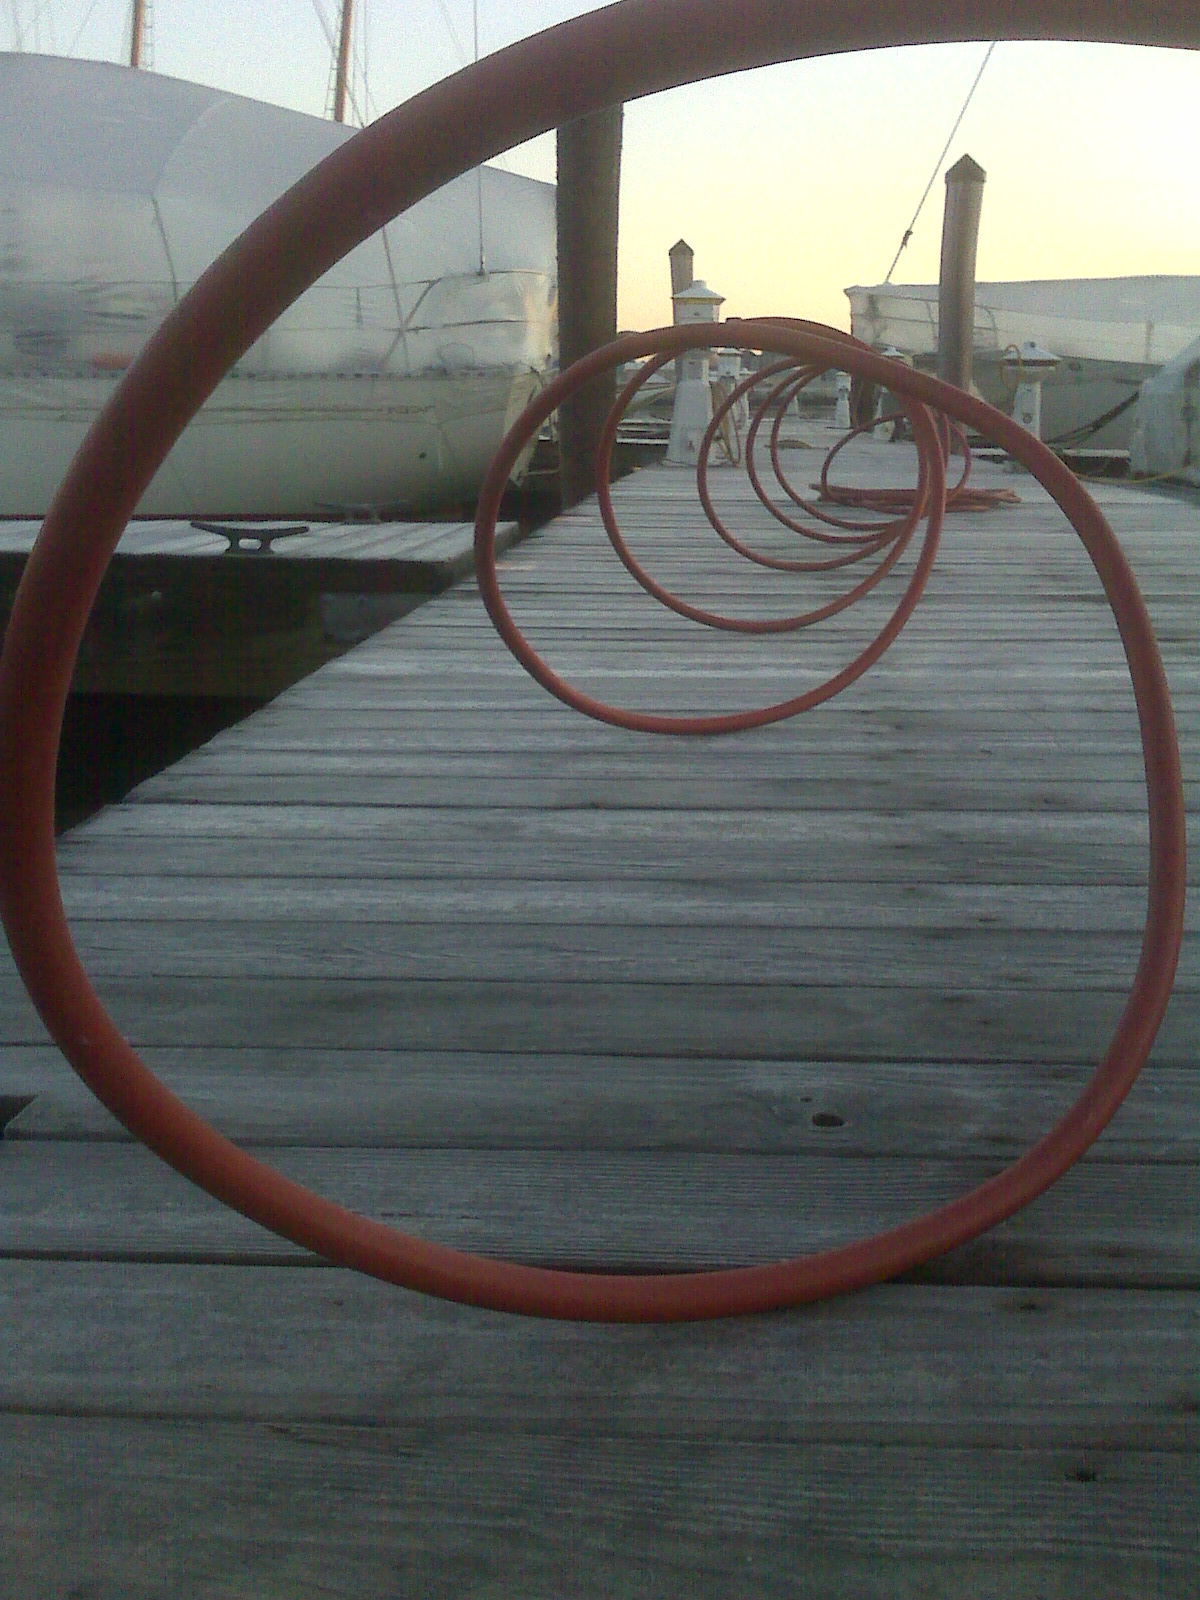 View from the dock- Cold chilled hose Getting water while the weather is nice 12-28-09